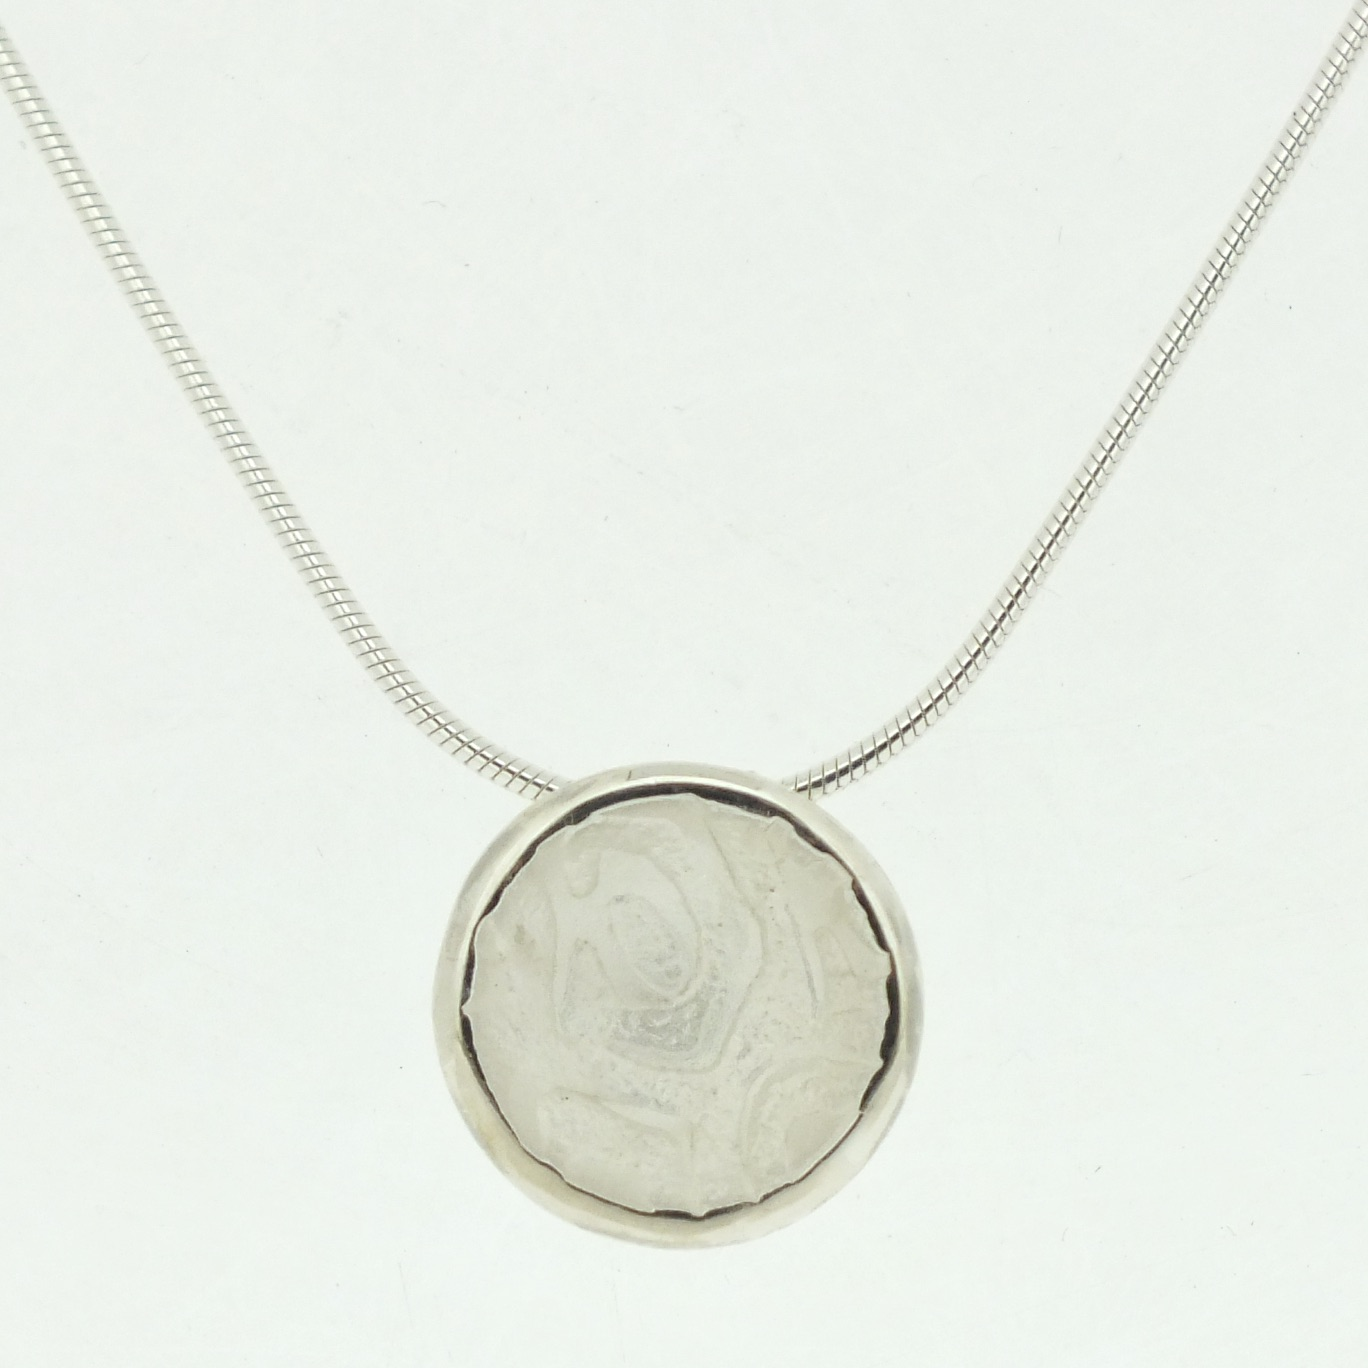 Concave Cup Pendant in textured sterling silver